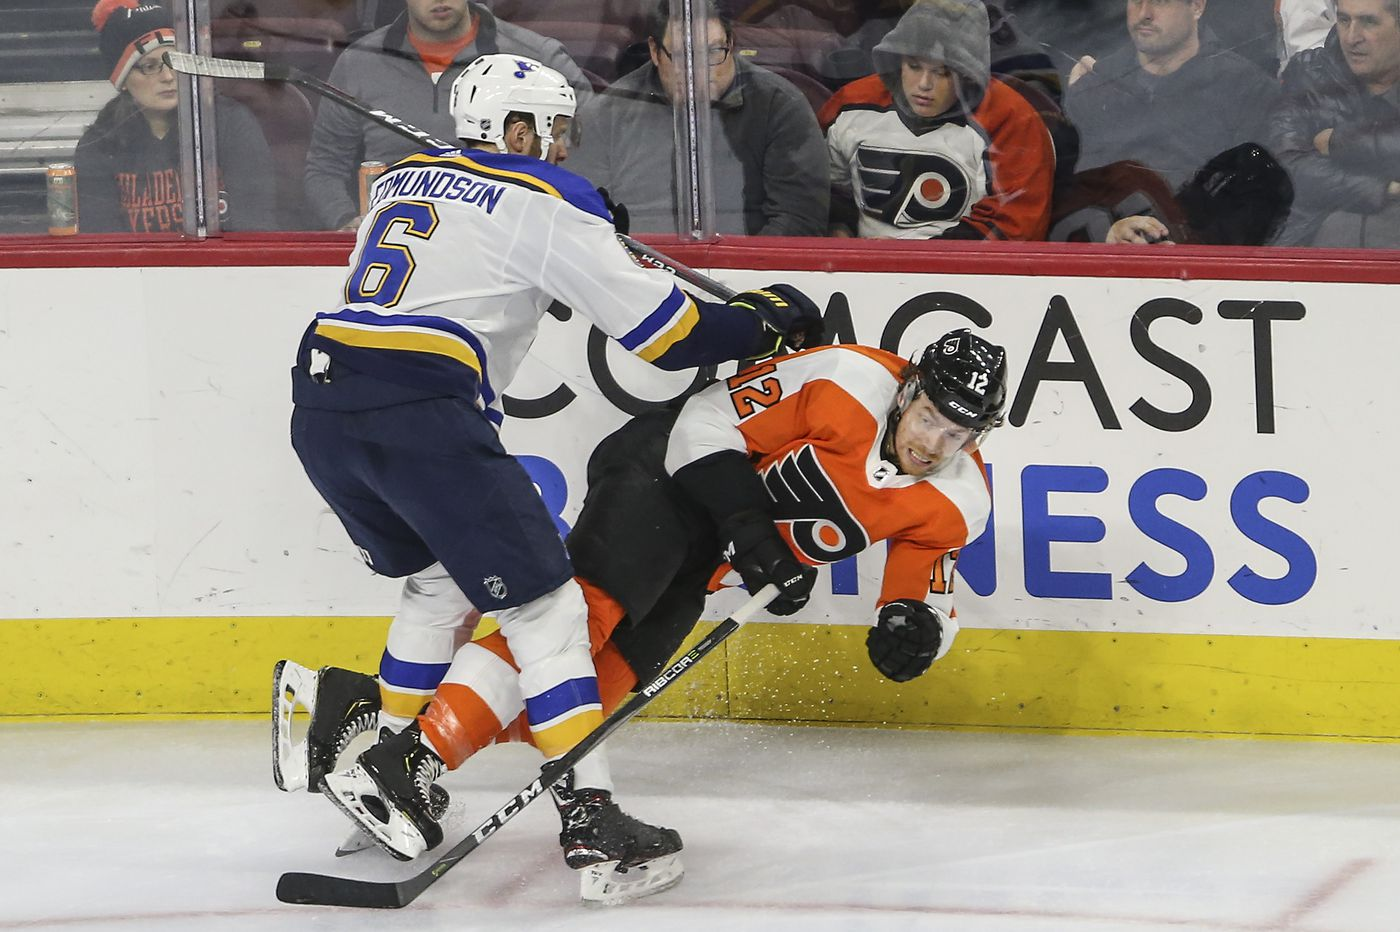 Flyers-Blues observations: Time for change, but no quick fix